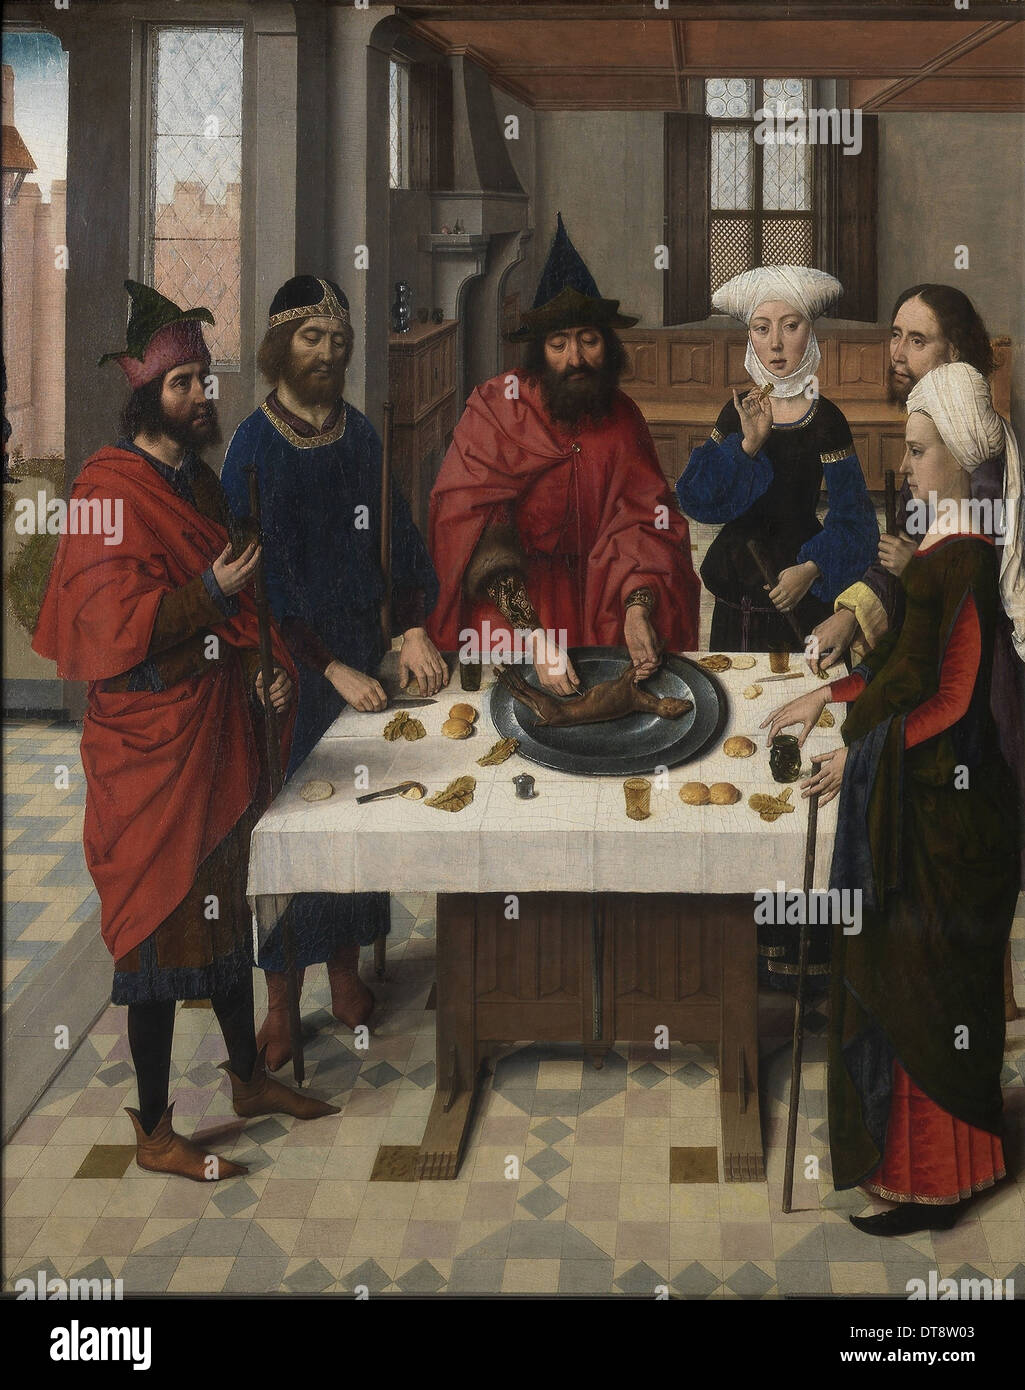 The Last Supper altarpiece: Passover Seder (left wing), 1464-1468. Artist: Bouts, Dirk (1410/20-1475) - Stock Image